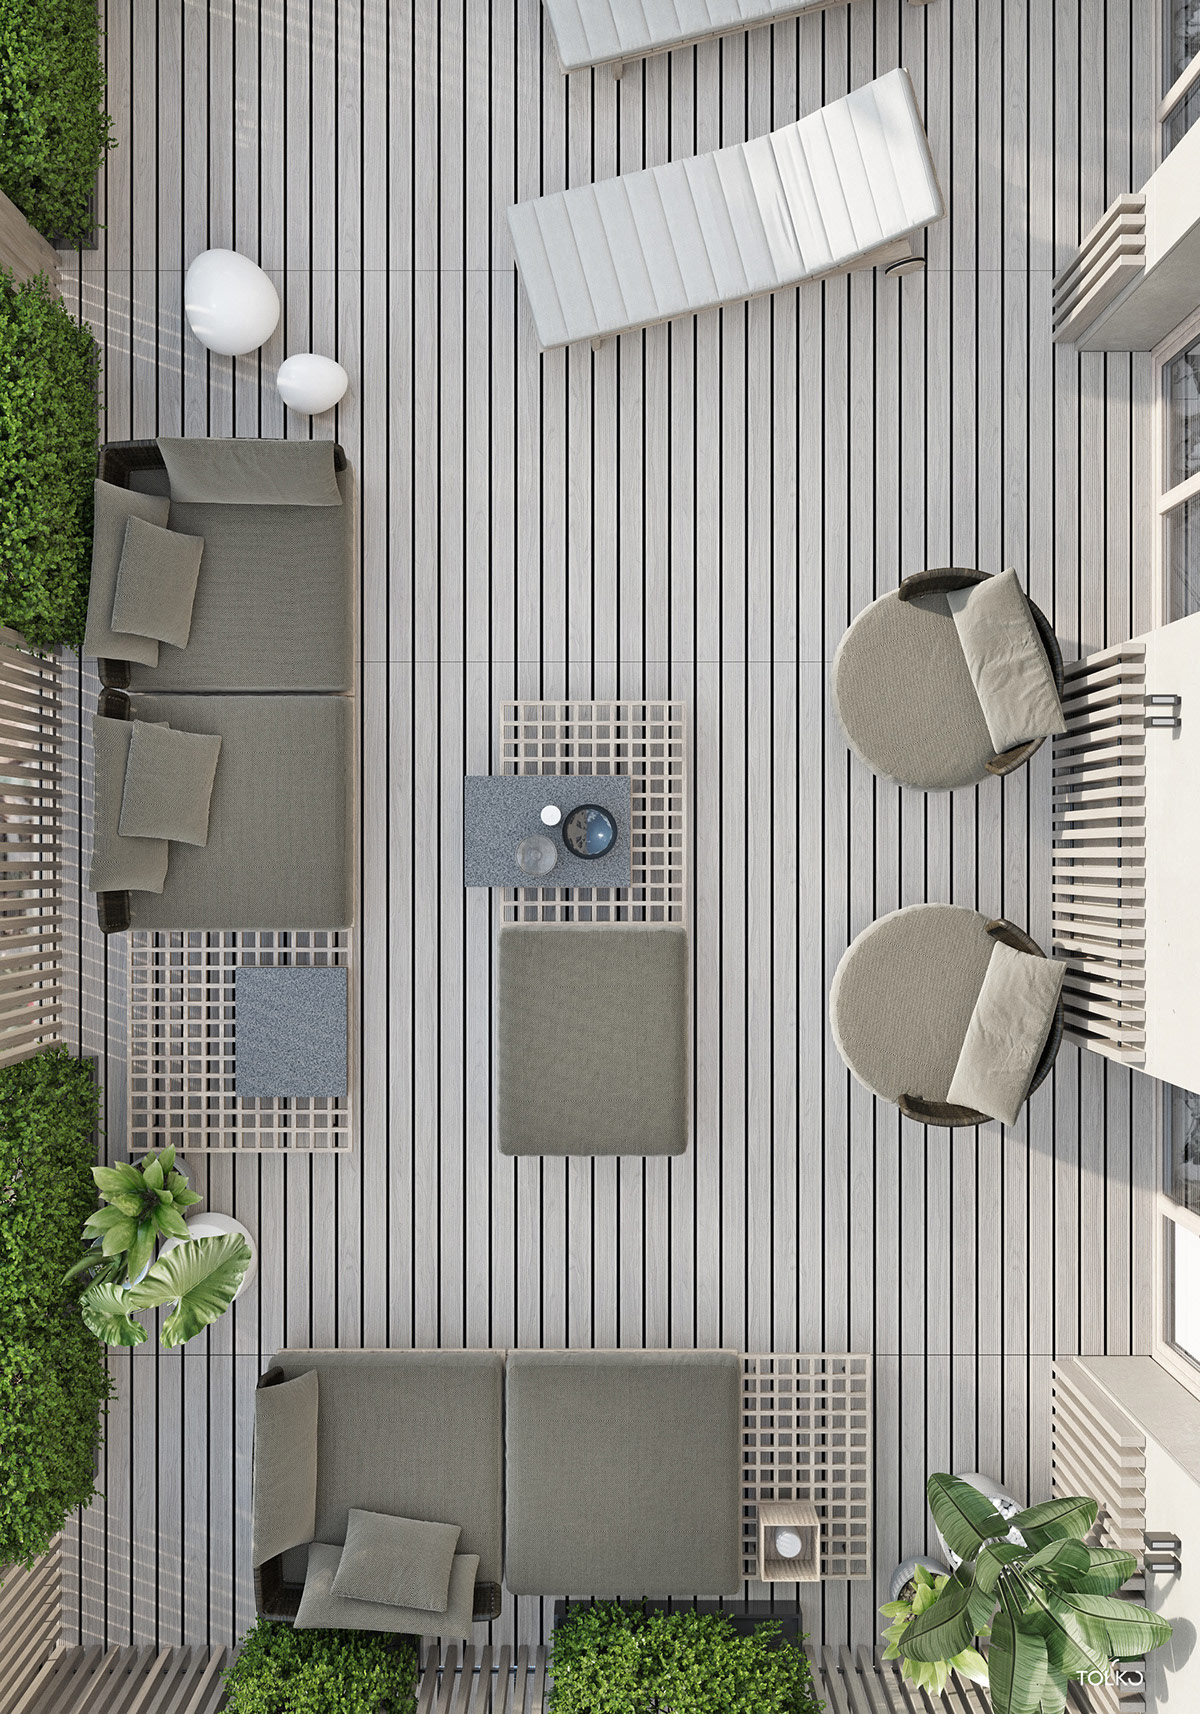 outdoor-chaise-lounge-chairs-600x857.jpg